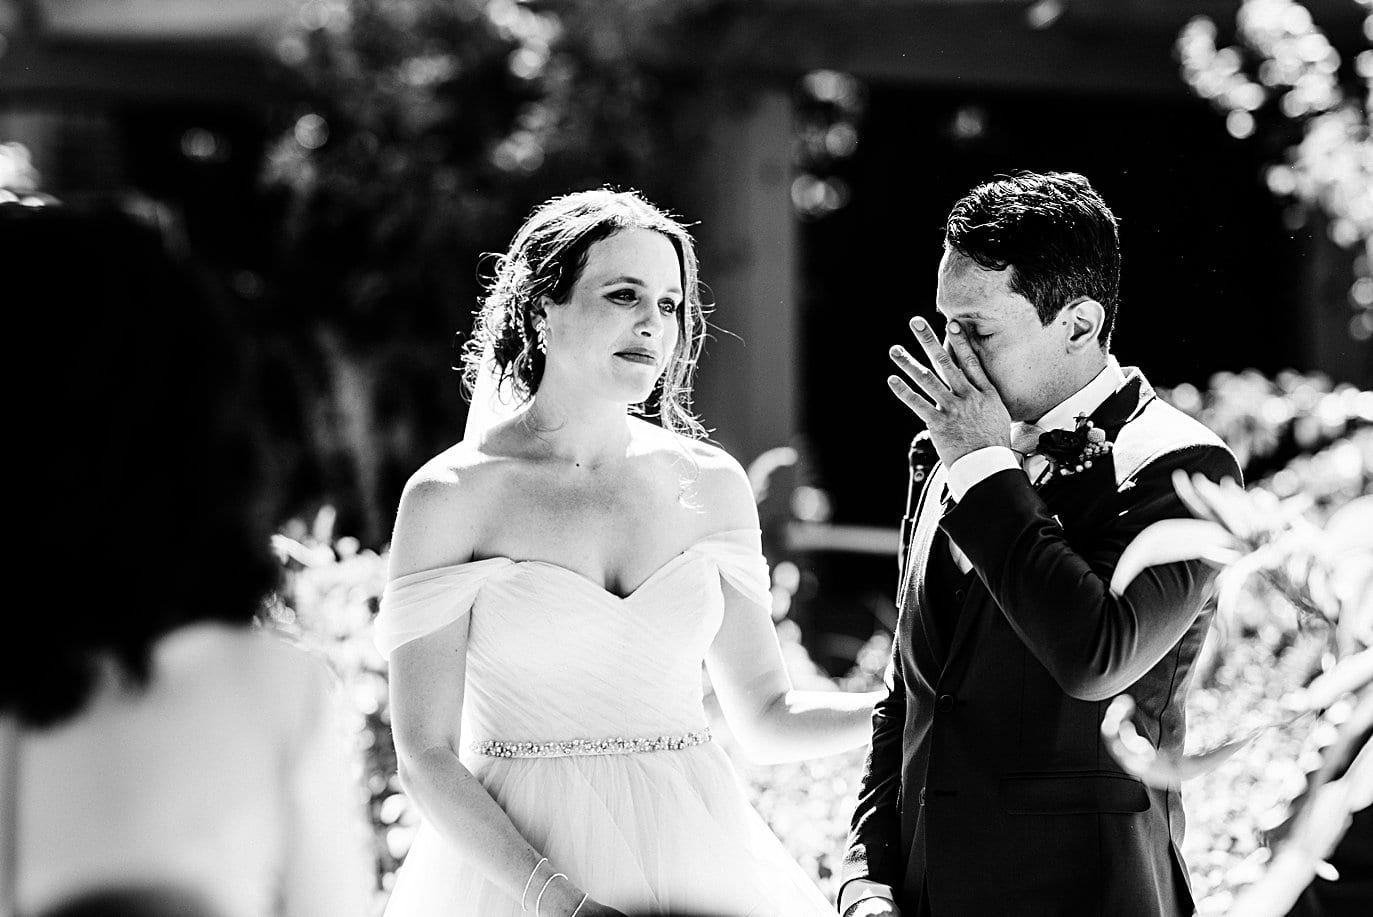 groom wipes away tears during self-solemnized wedding ceremony at Denver Botanic Gardens microwedding by Denver wedding photographer Jennie Crate